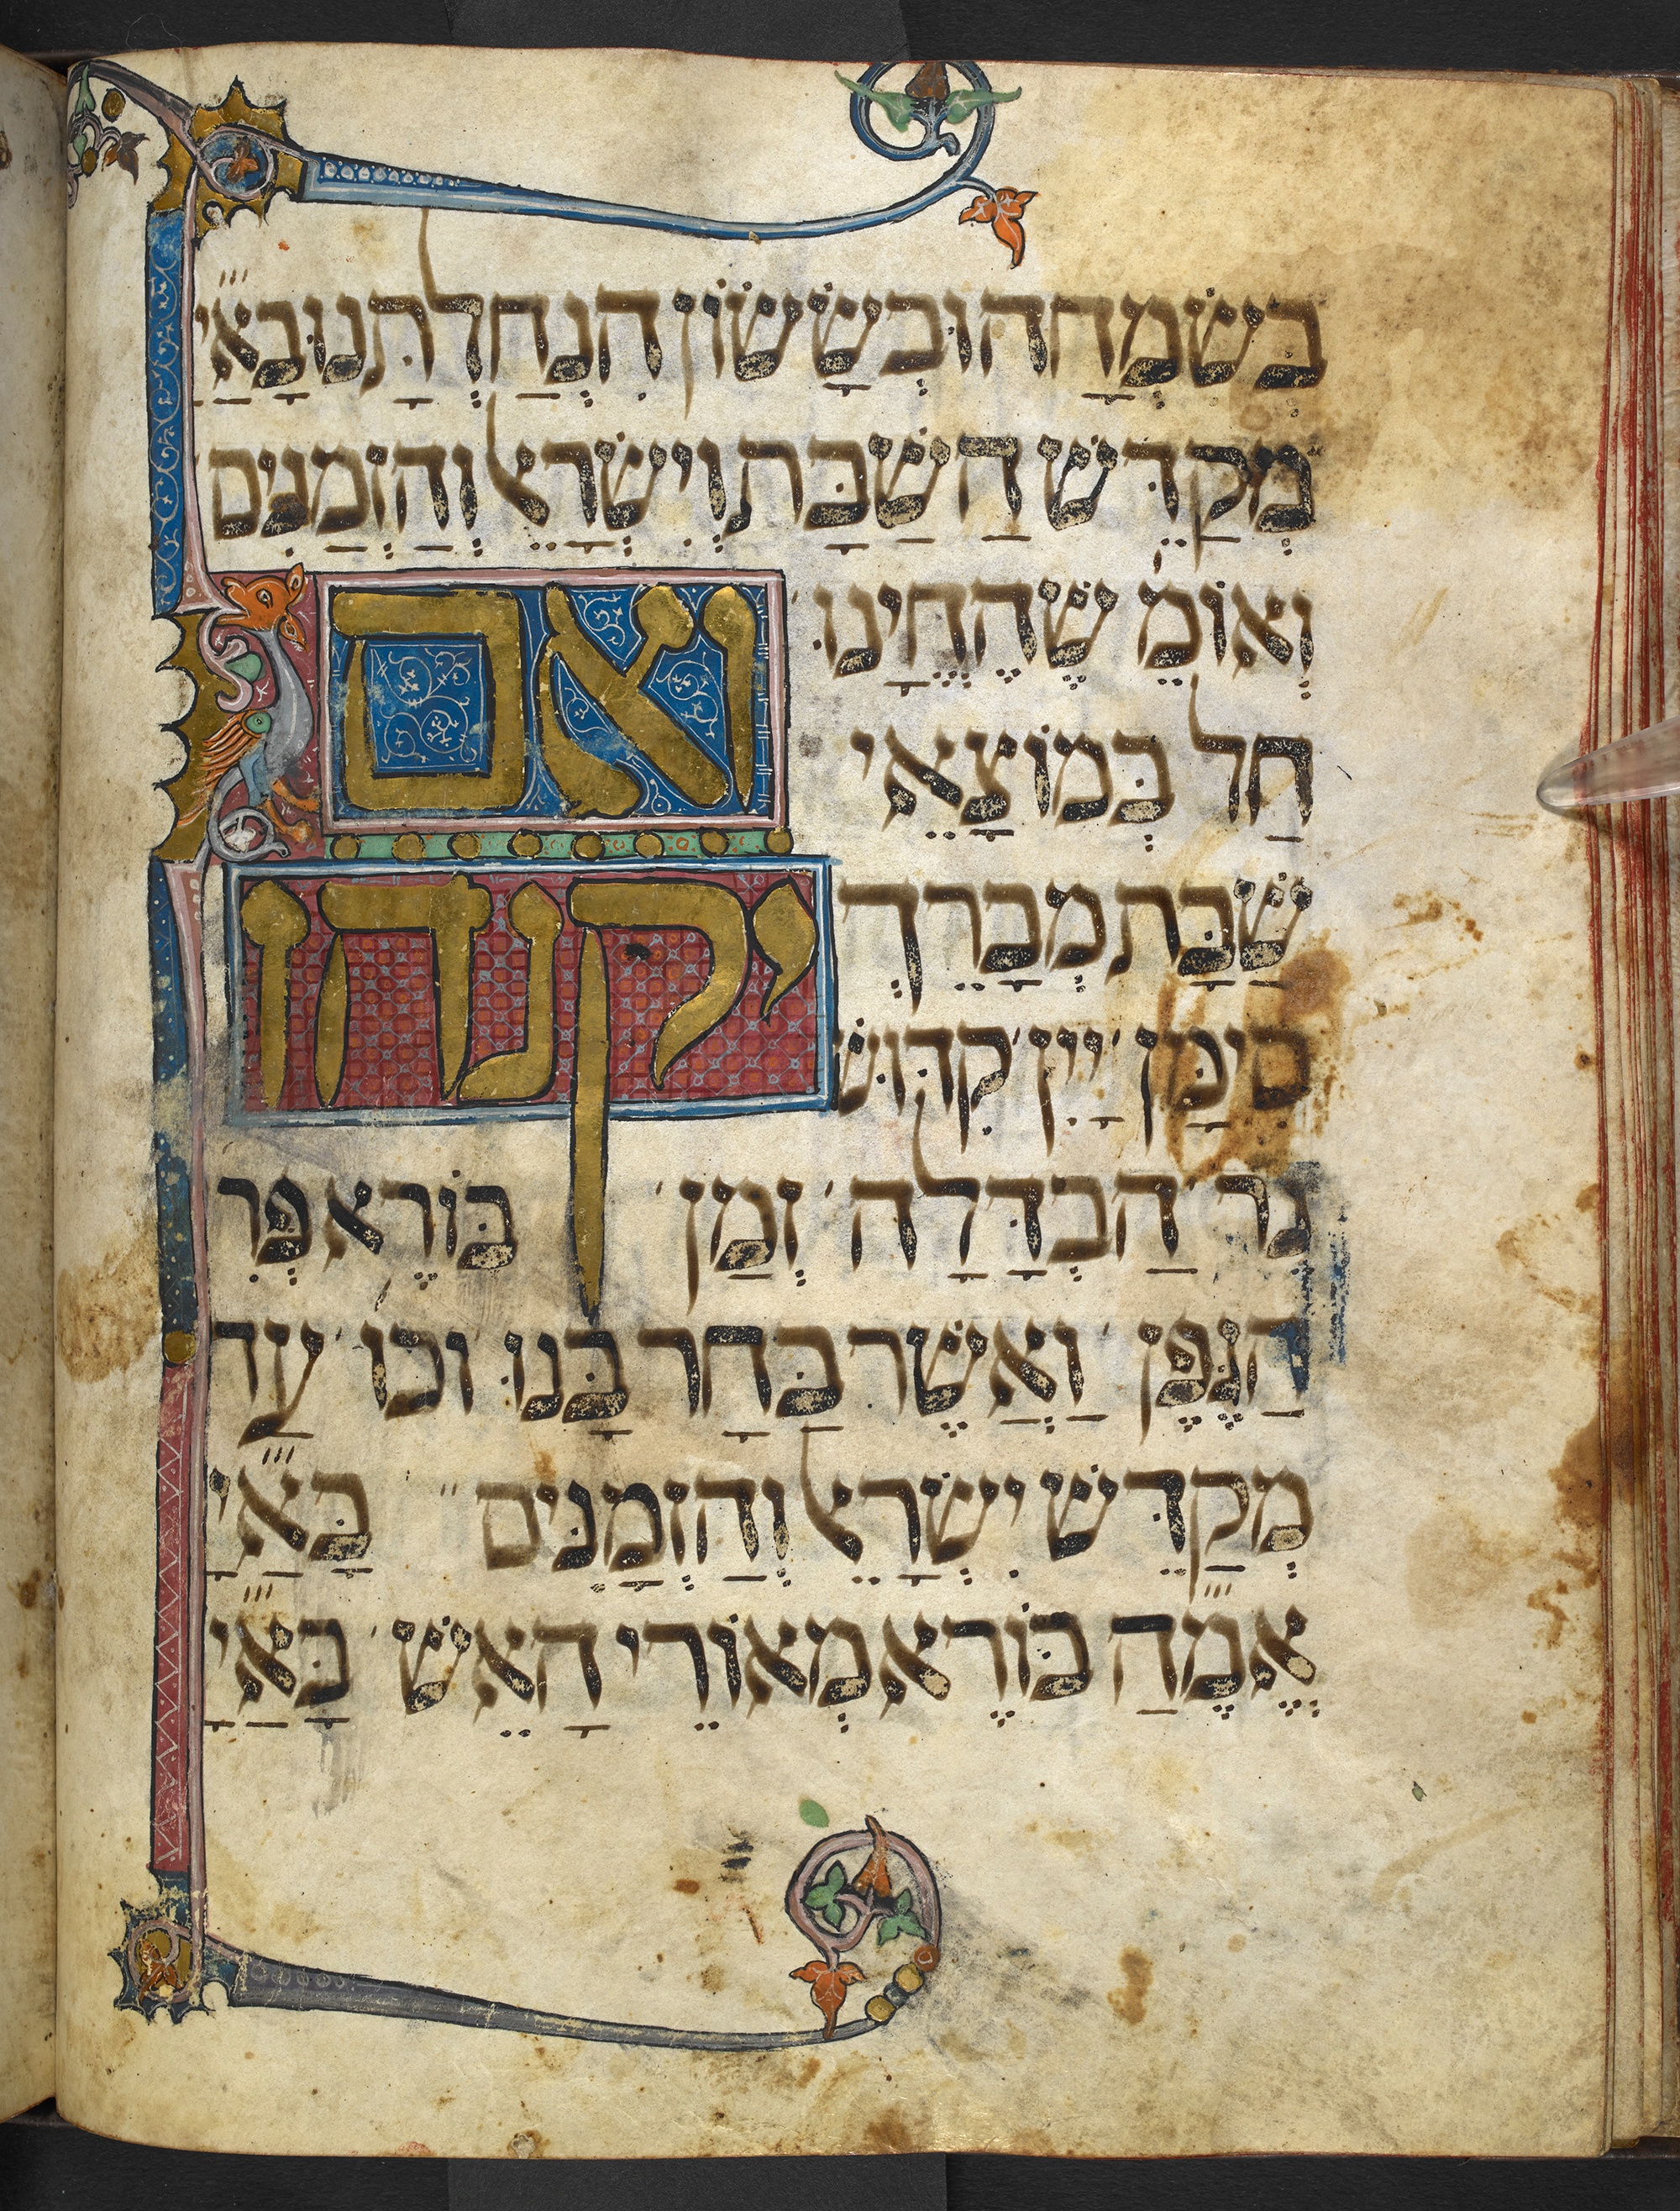 The beginning of the Haggadah text in the Golden Haggadah, Catalonia, c. 1320 CE, The Golden Haggadah, Add MS 27210, Hebrew Manuscripts Digitisation Project, British Library